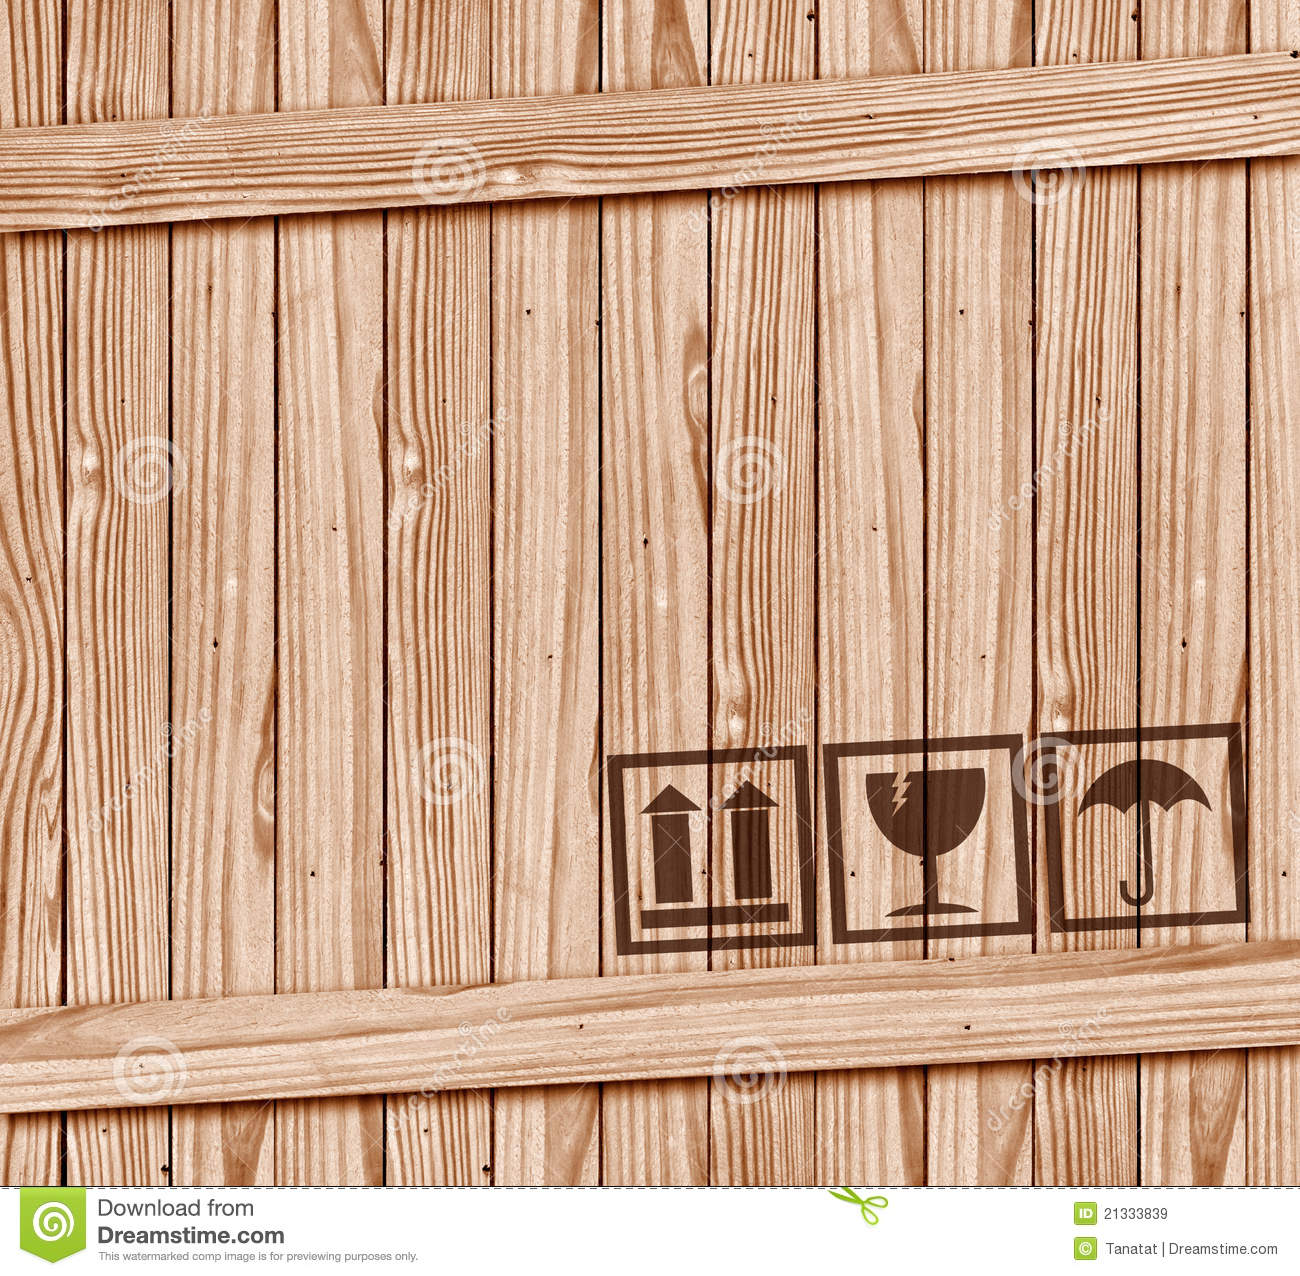 Safety fragile icon on wood box with space